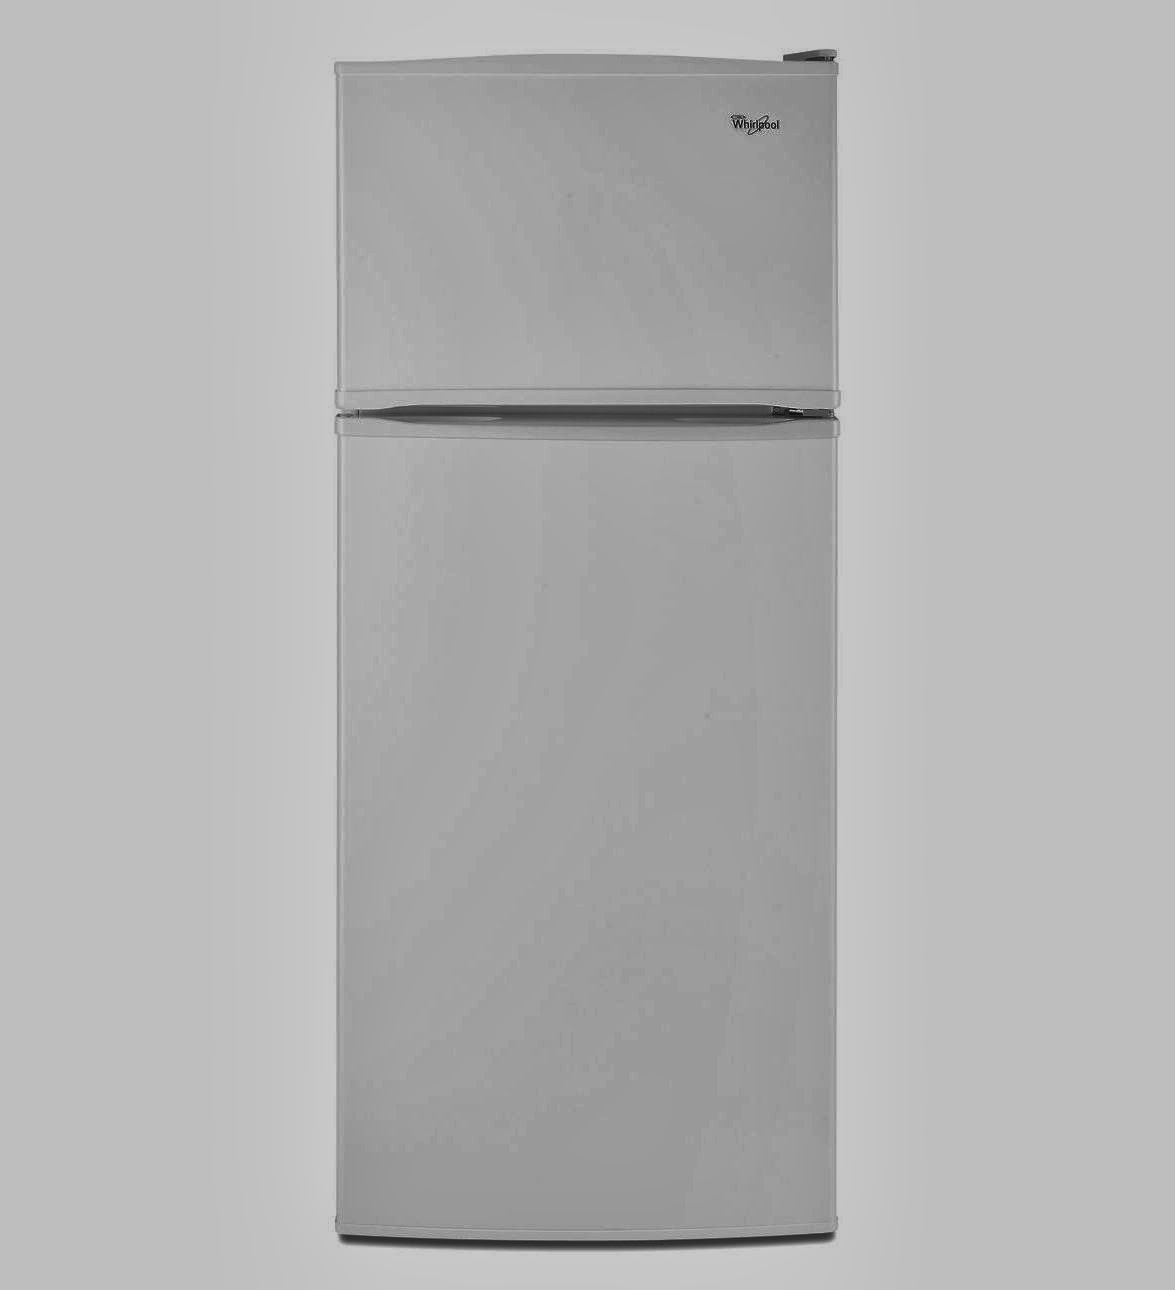 whirlpool refrigerator brand white whirlpool w8rxegmwq. Black Bedroom Furniture Sets. Home Design Ideas